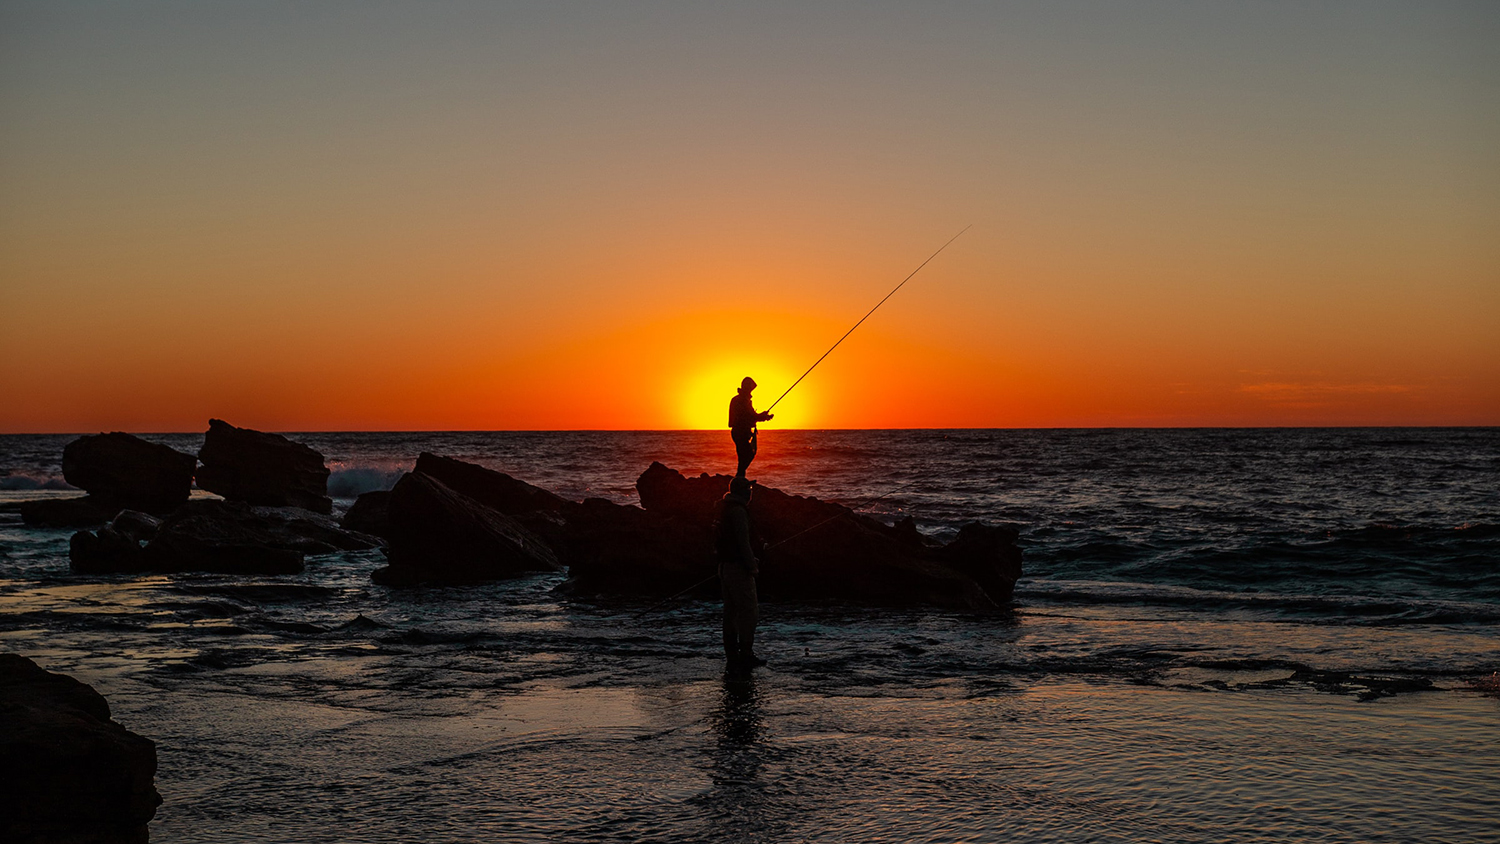 an angler fishing on the shore